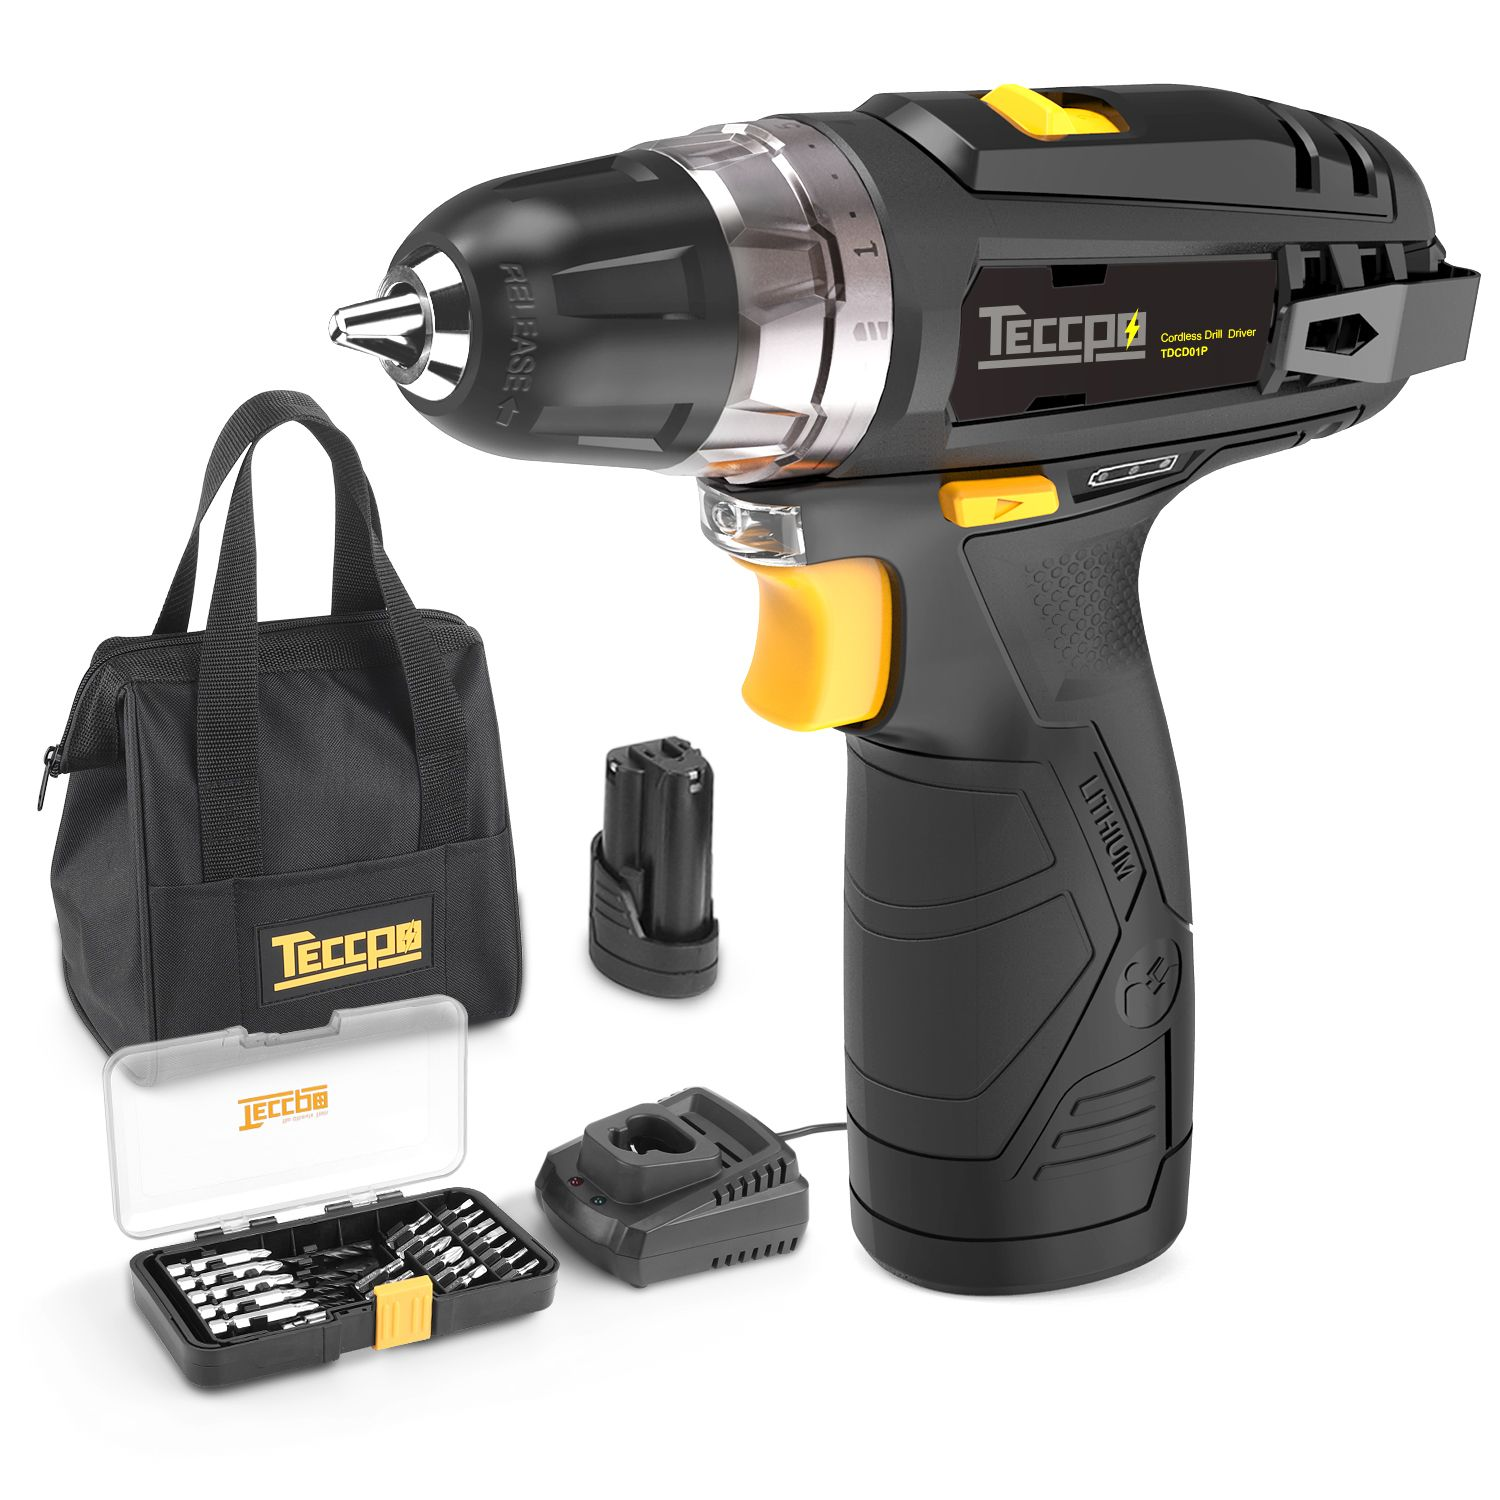 Cordless Drill Teccpo 12v Drill Driver 2pcs 2 0ah Li Ion Batteries Torque 265in Lbs 1 Hrs Fast Charger 2 Speed 20 1 Torque Setting 29pcs Accessories And W